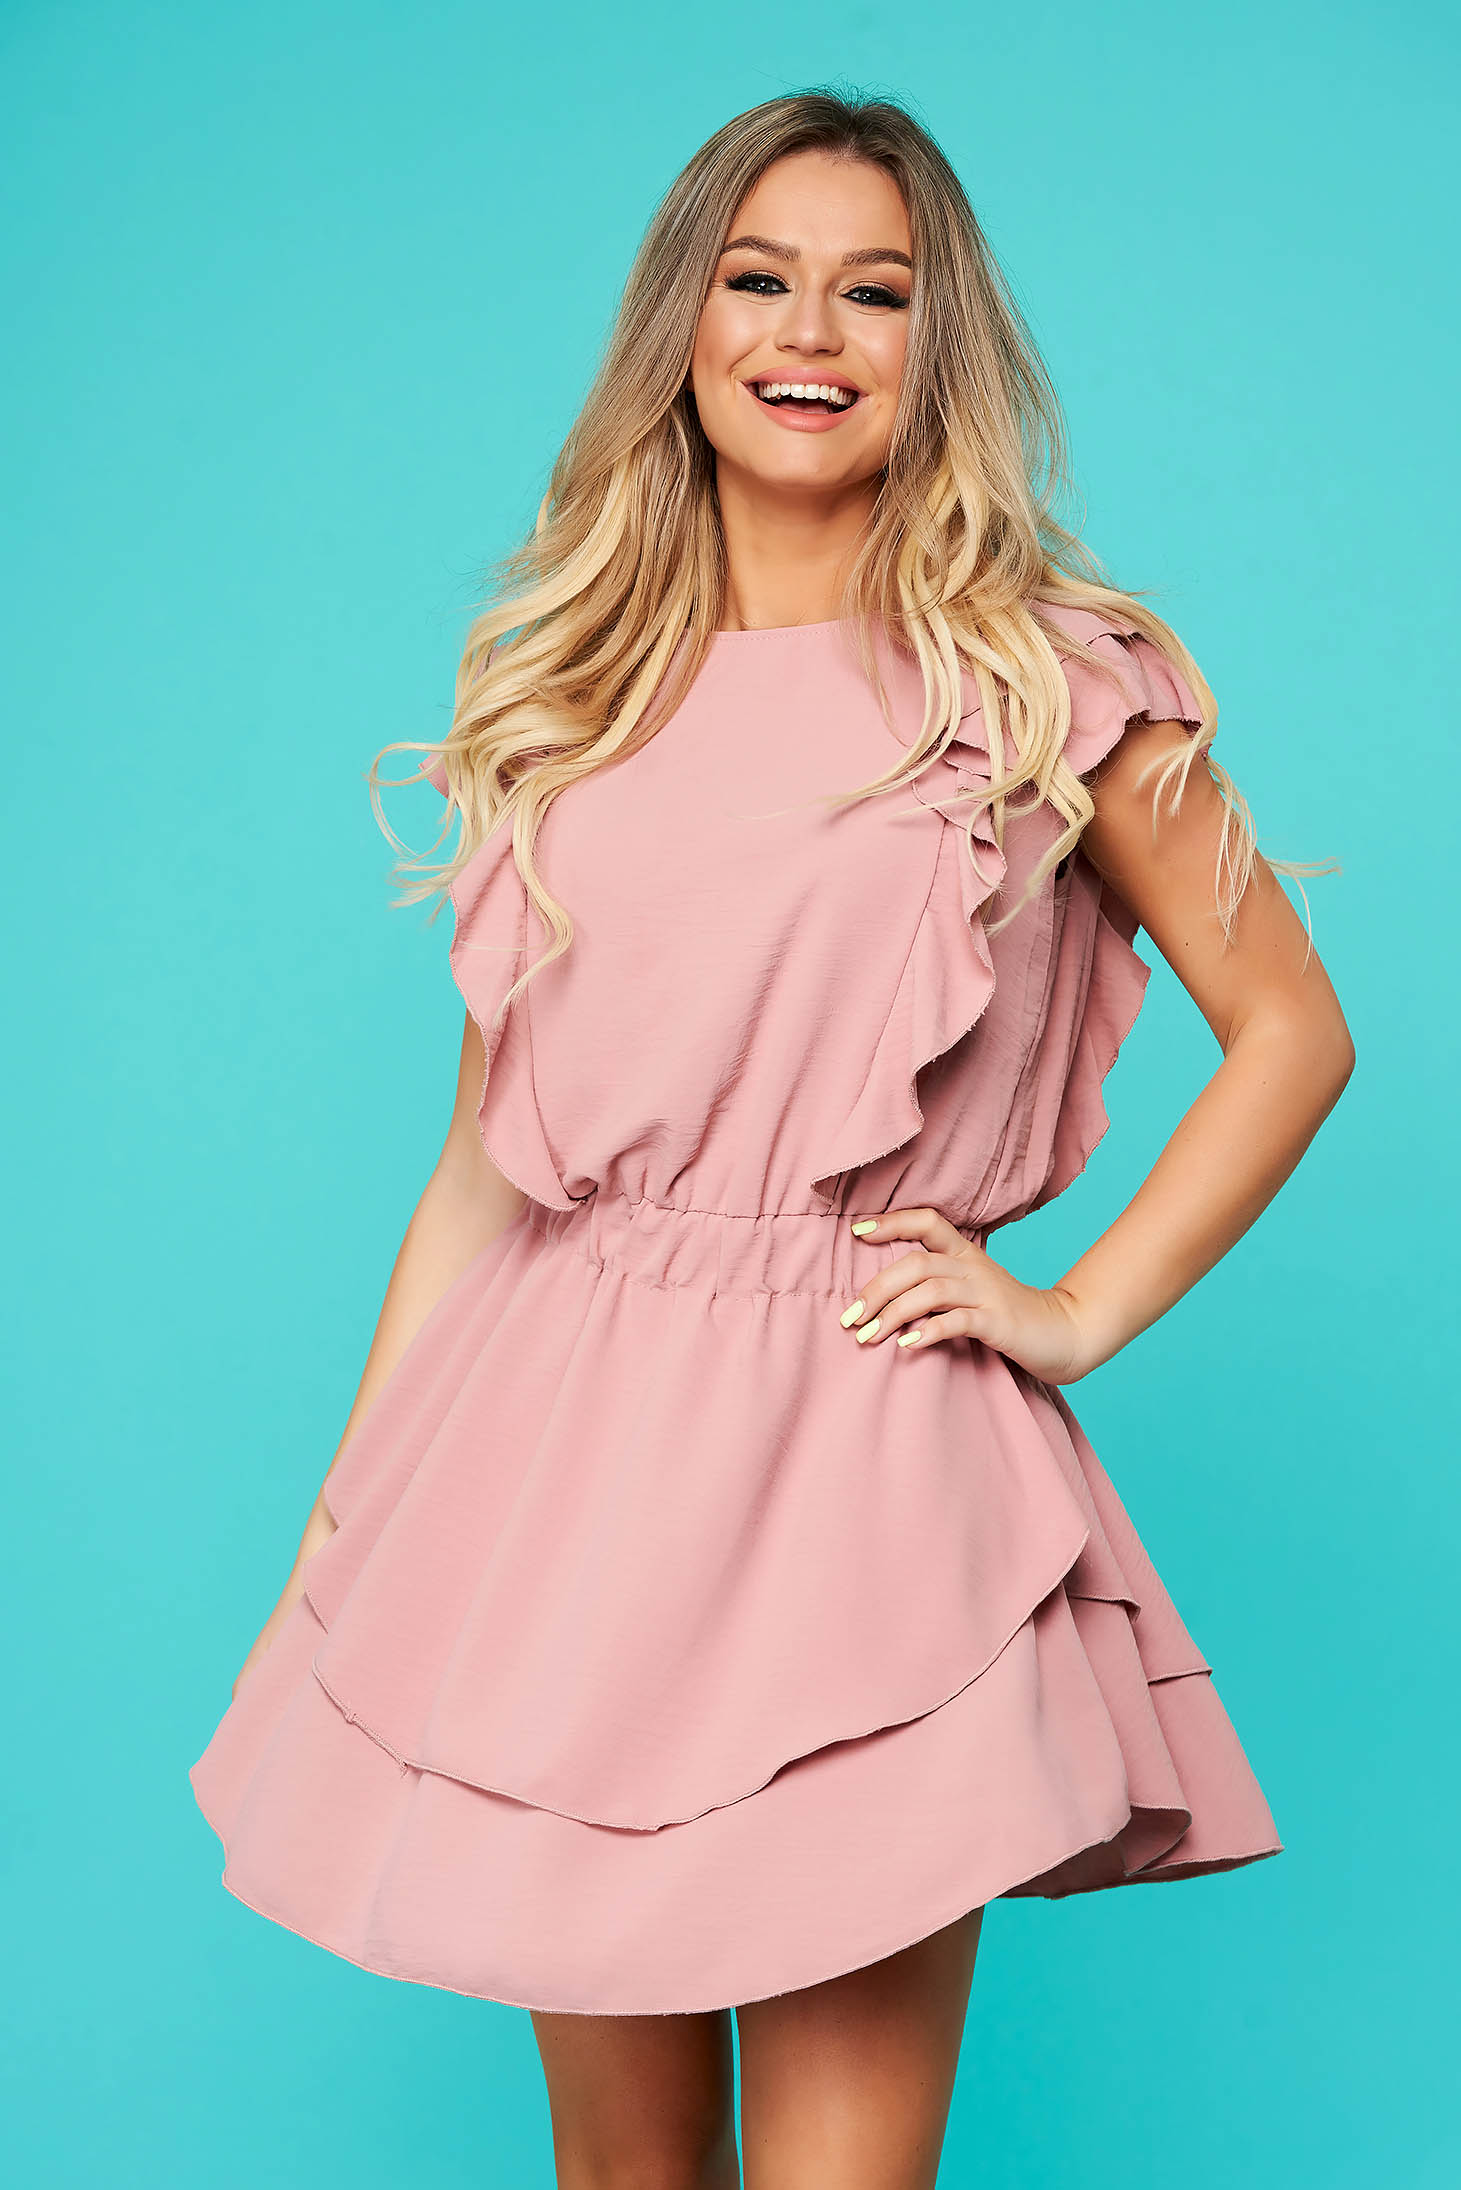 Lightpink dress daily flaring cut with elastic waist with ruffle details